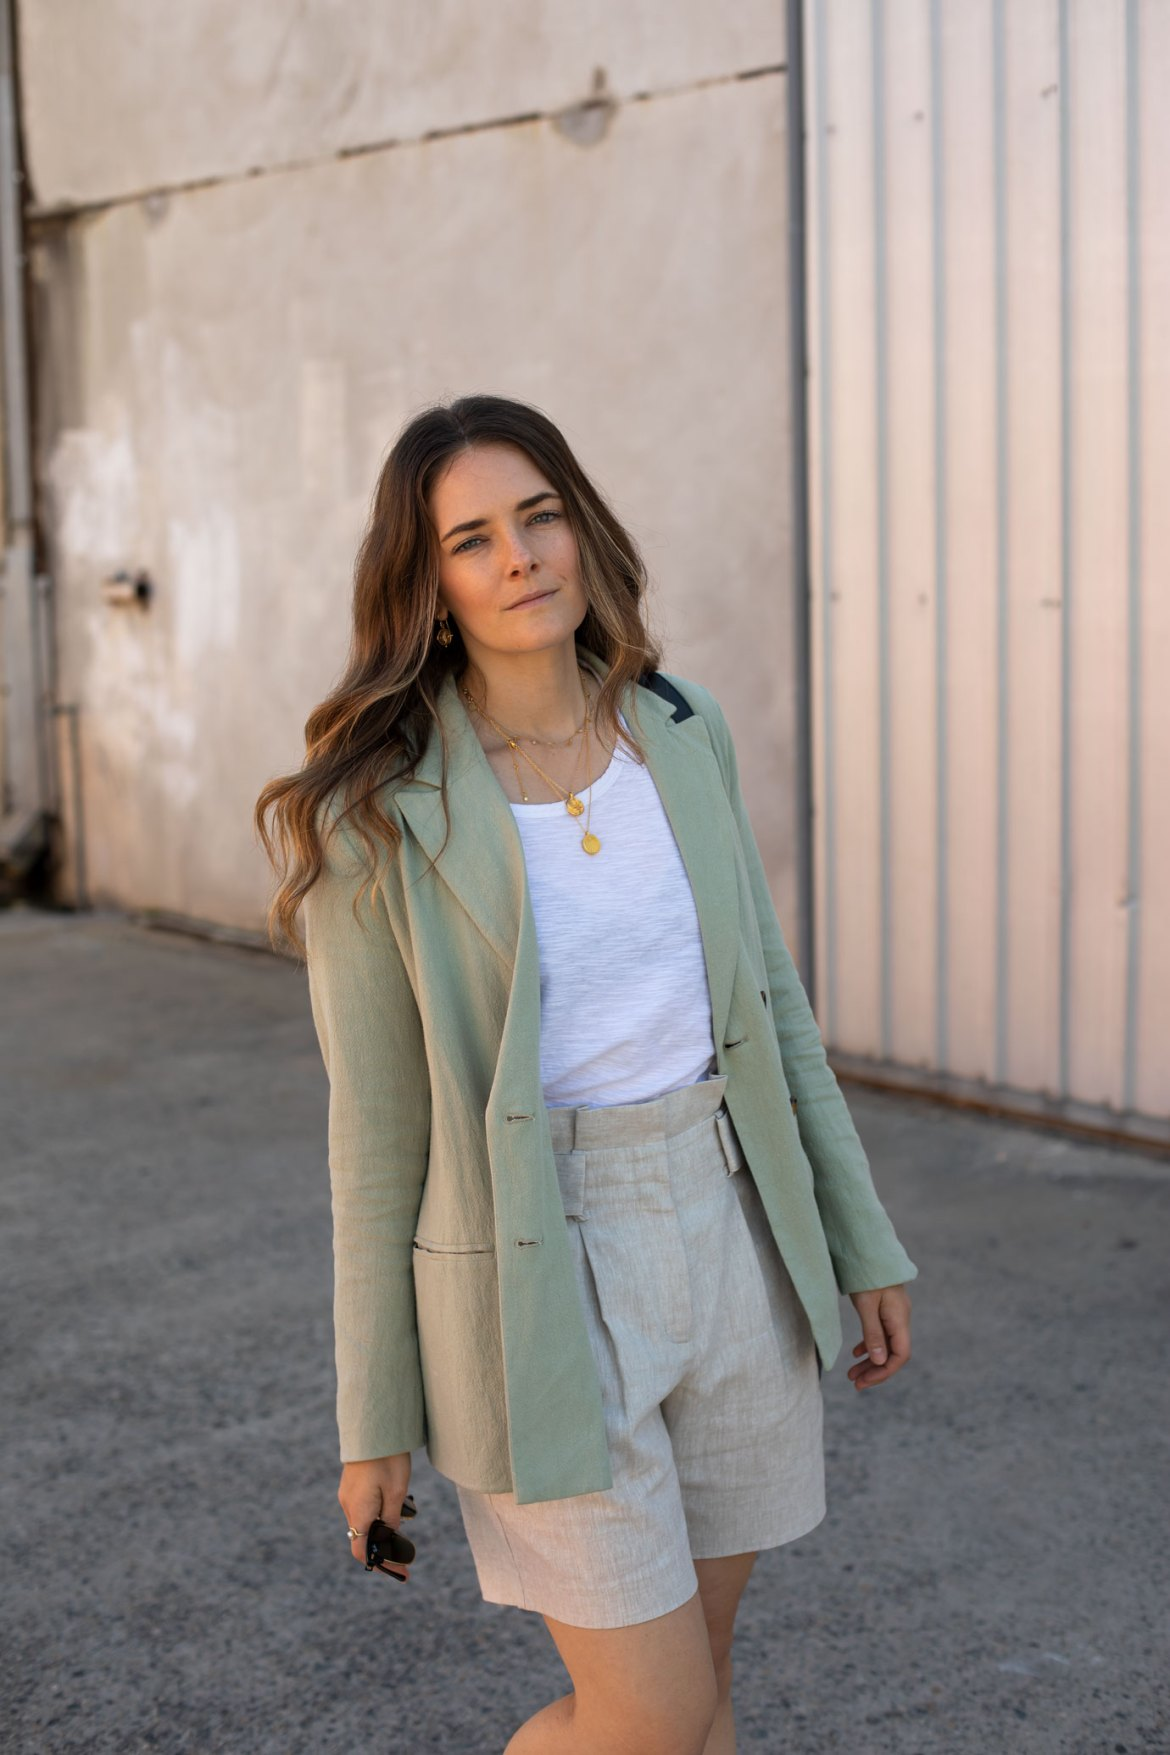 casual neutral linen look with gold necklaces